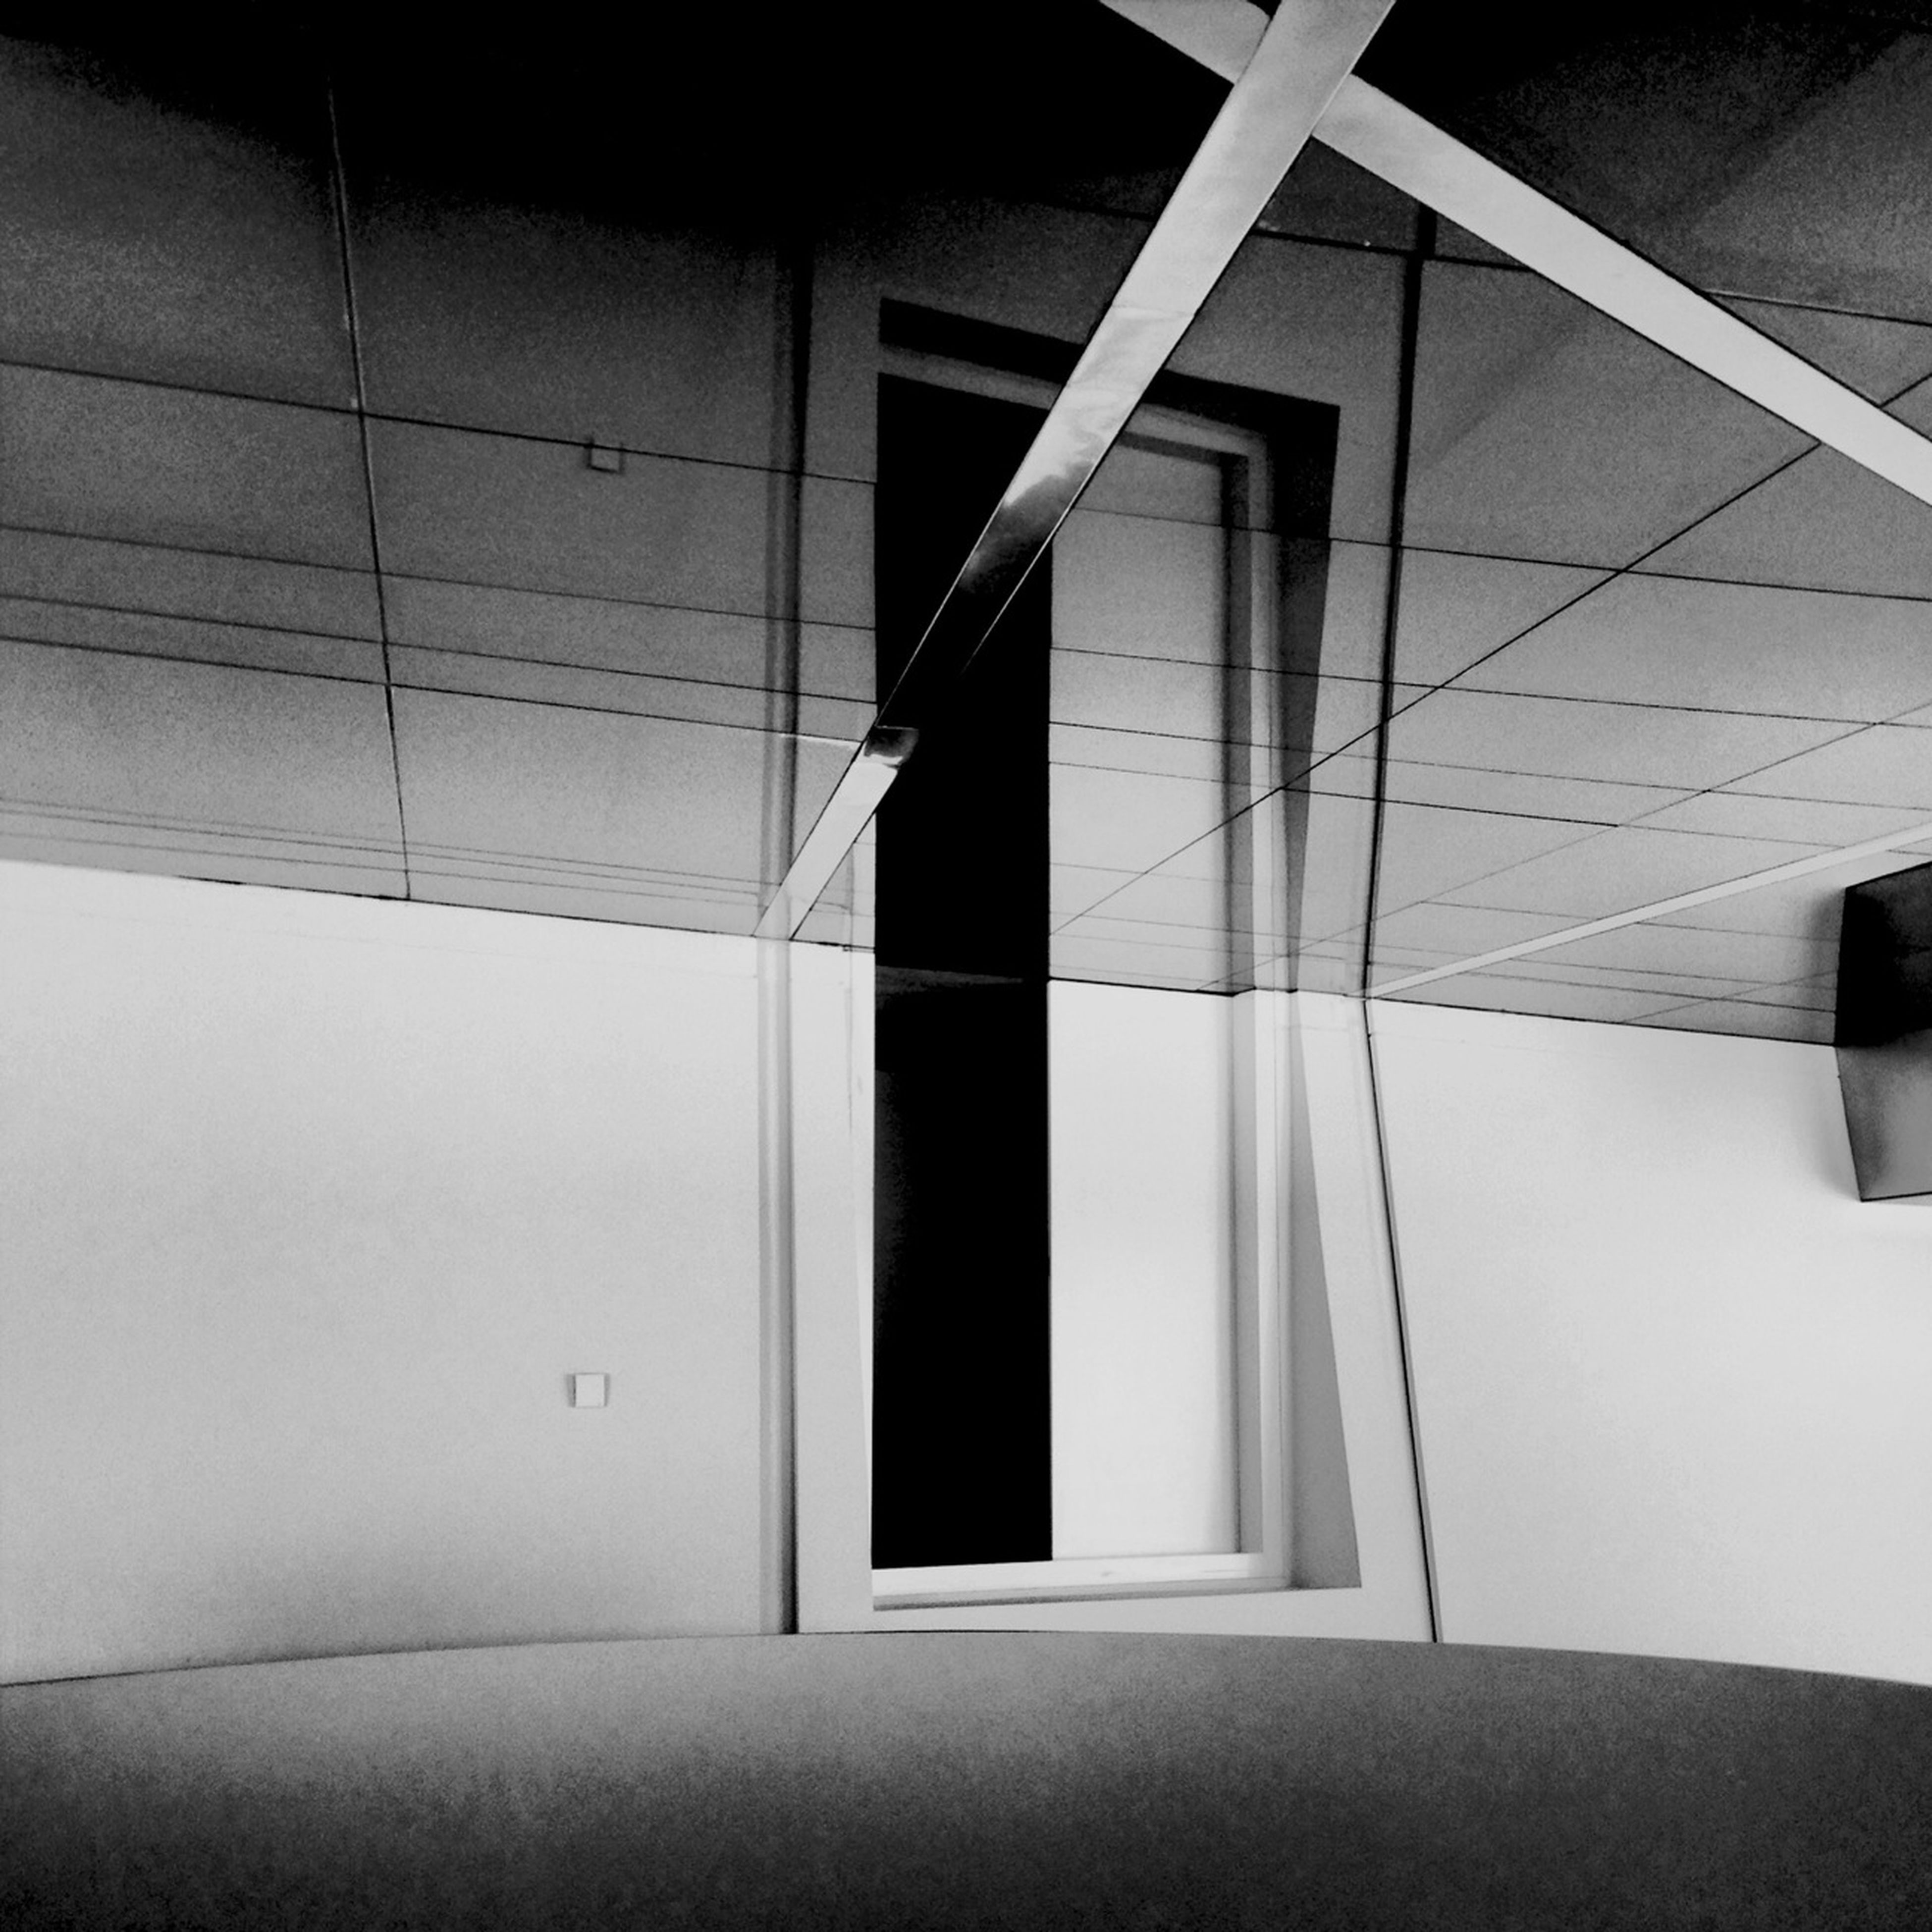 architecture, built structure, building exterior, indoors, building, window, wall - building feature, sunlight, shadow, low angle view, no people, wall, day, house, modern, ceiling, door, reflection, geometric shape, absence